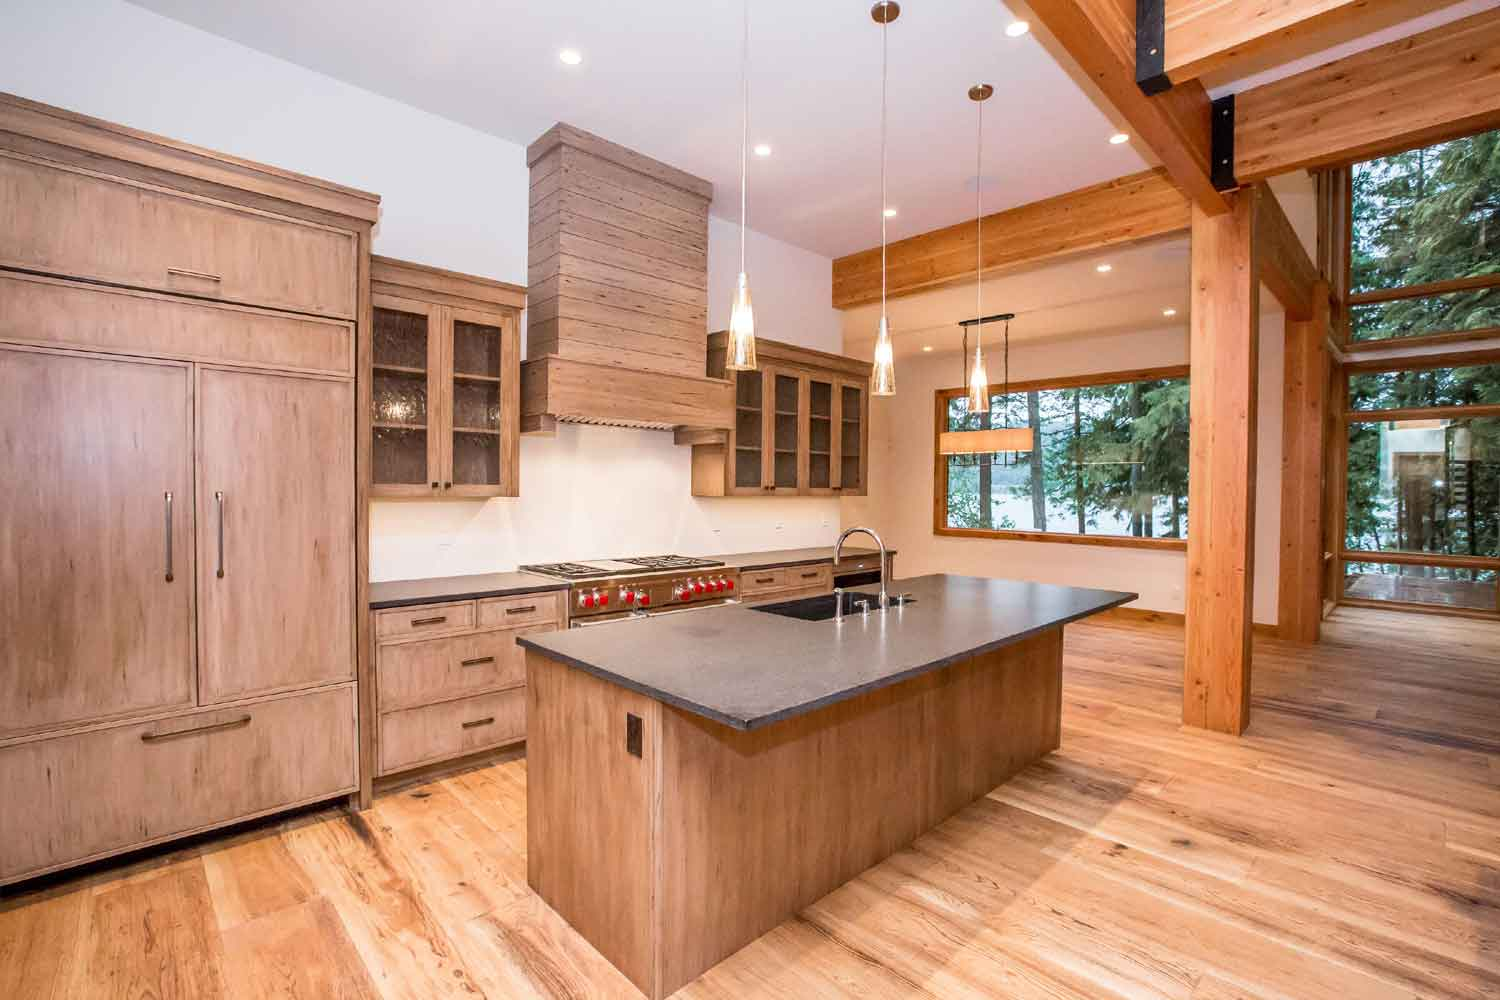 <b>Whitefish, Montana</b><br/><i>5 Bedrooms, 4,632 sq. ft.</i><br/>Lakefront home with stunning vistas of the lake